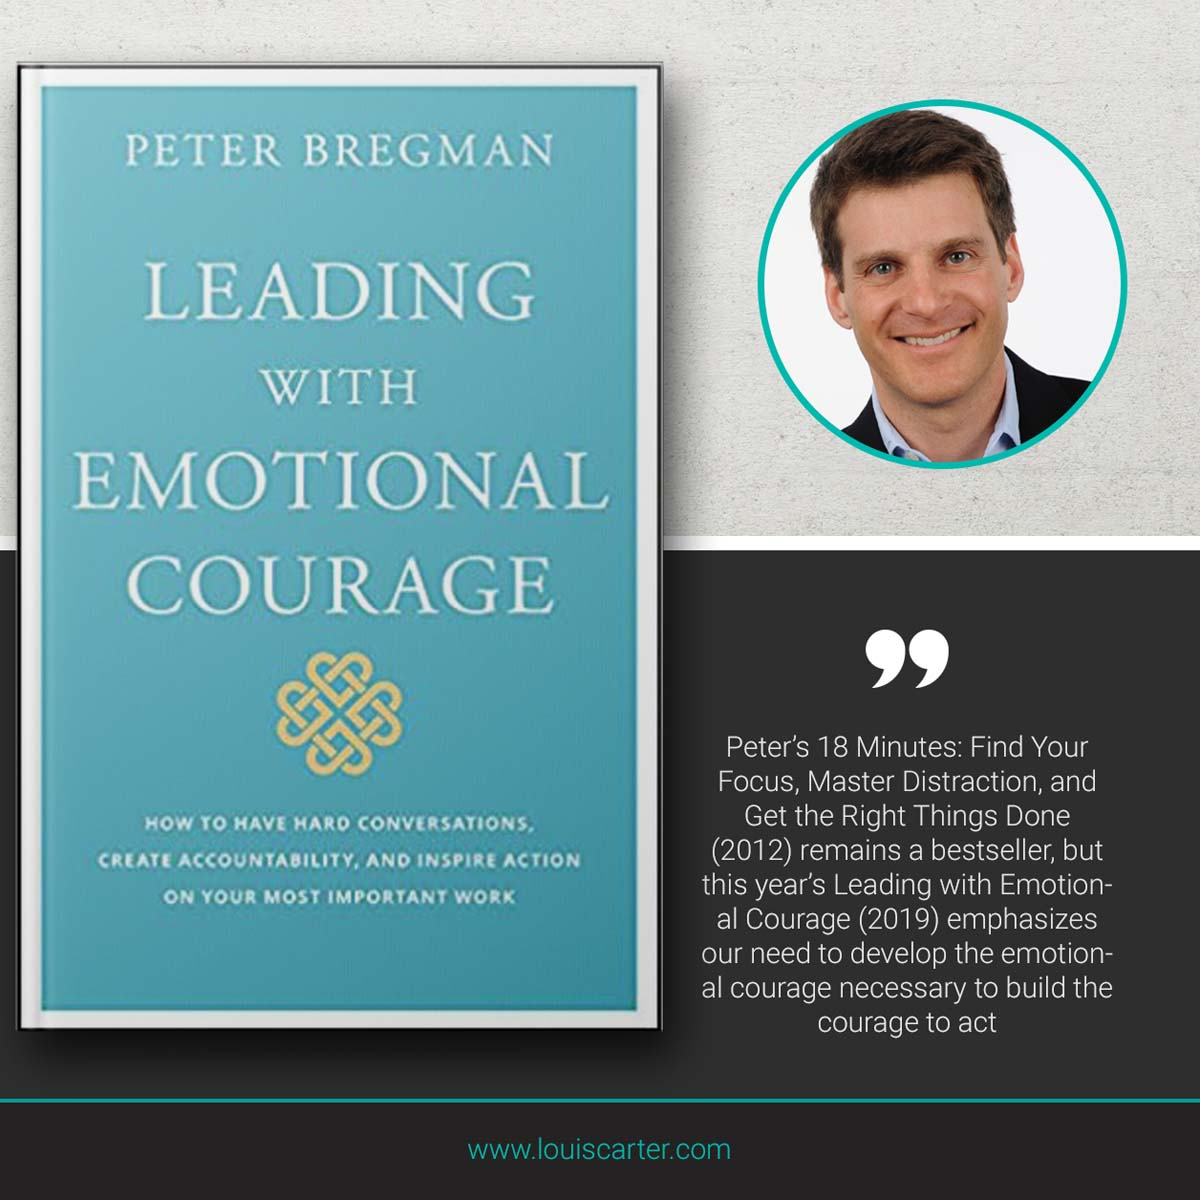 Image of Leading With Emotional Courage by Peter Bregman Leadership book.